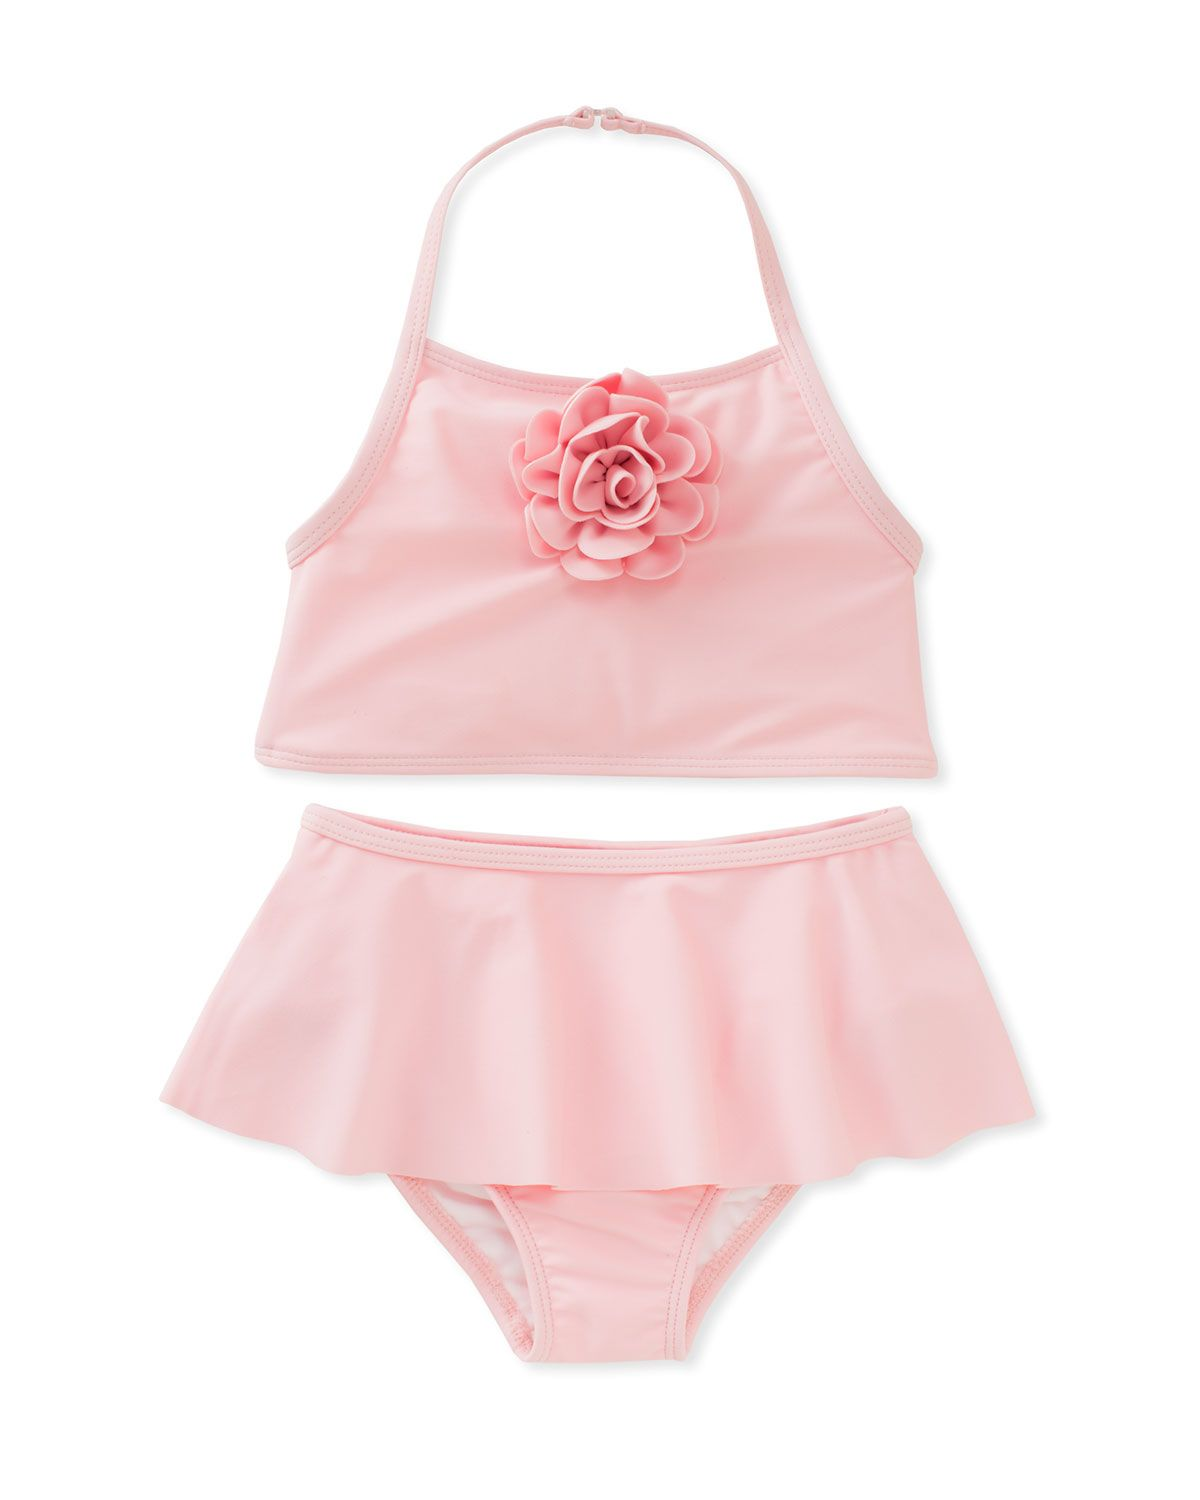 1e8f8bd725c95 Kate Spade New York skirted two-piece halter swimsuit, size 12-24 months